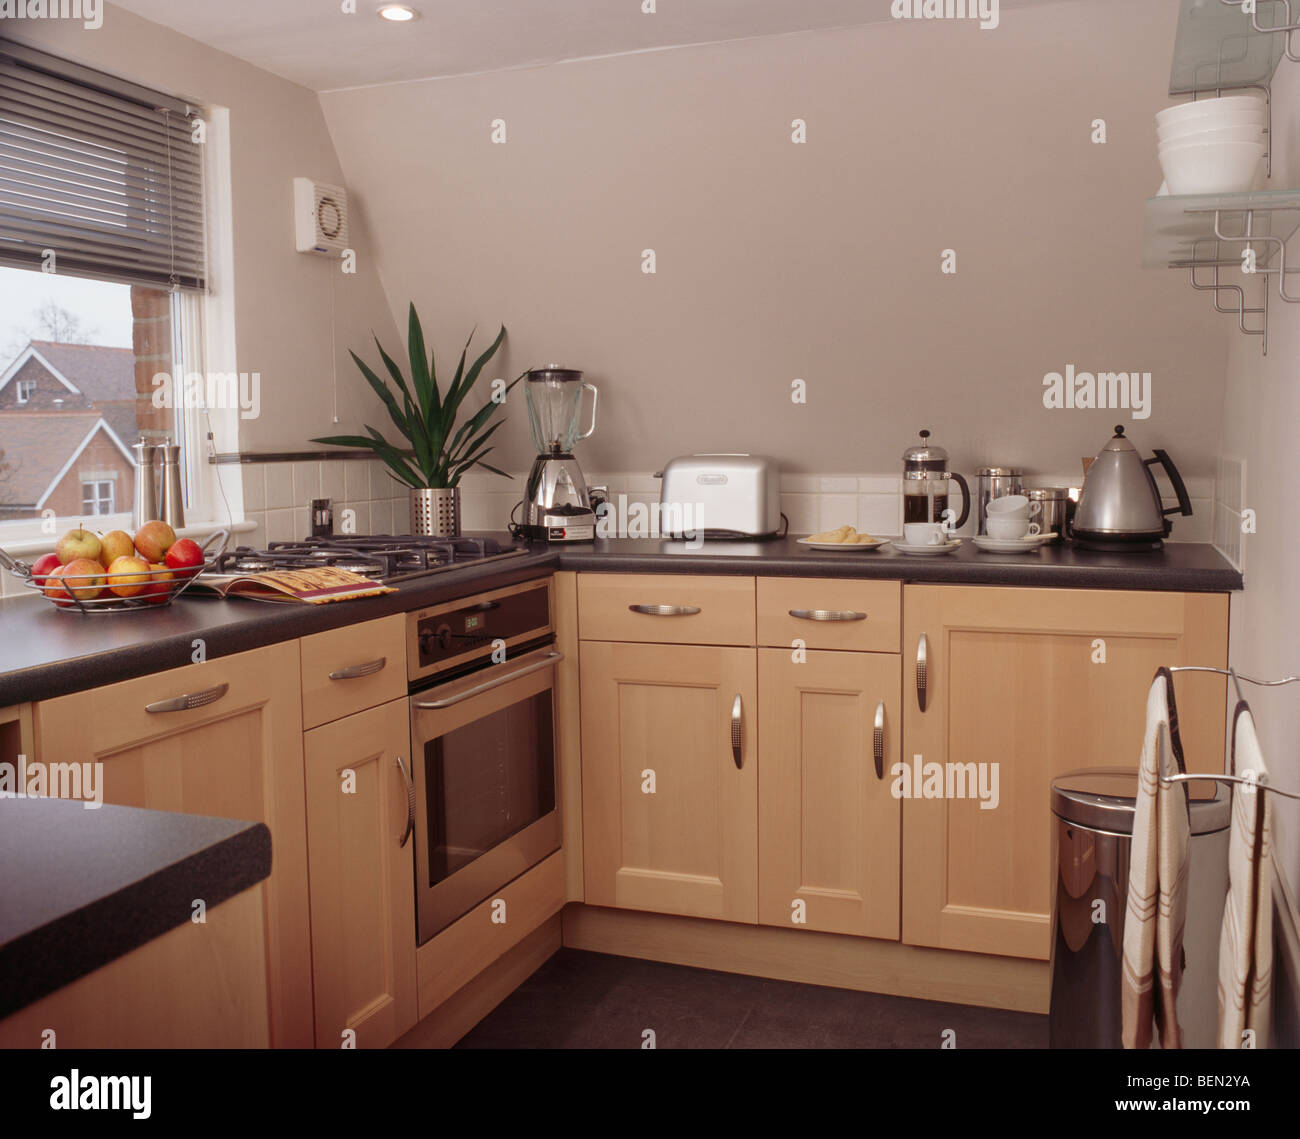 Uncategorized Fitted Kitchen Appliances pale wood fitted units in small apartment kitchen with electric appliances on worktop